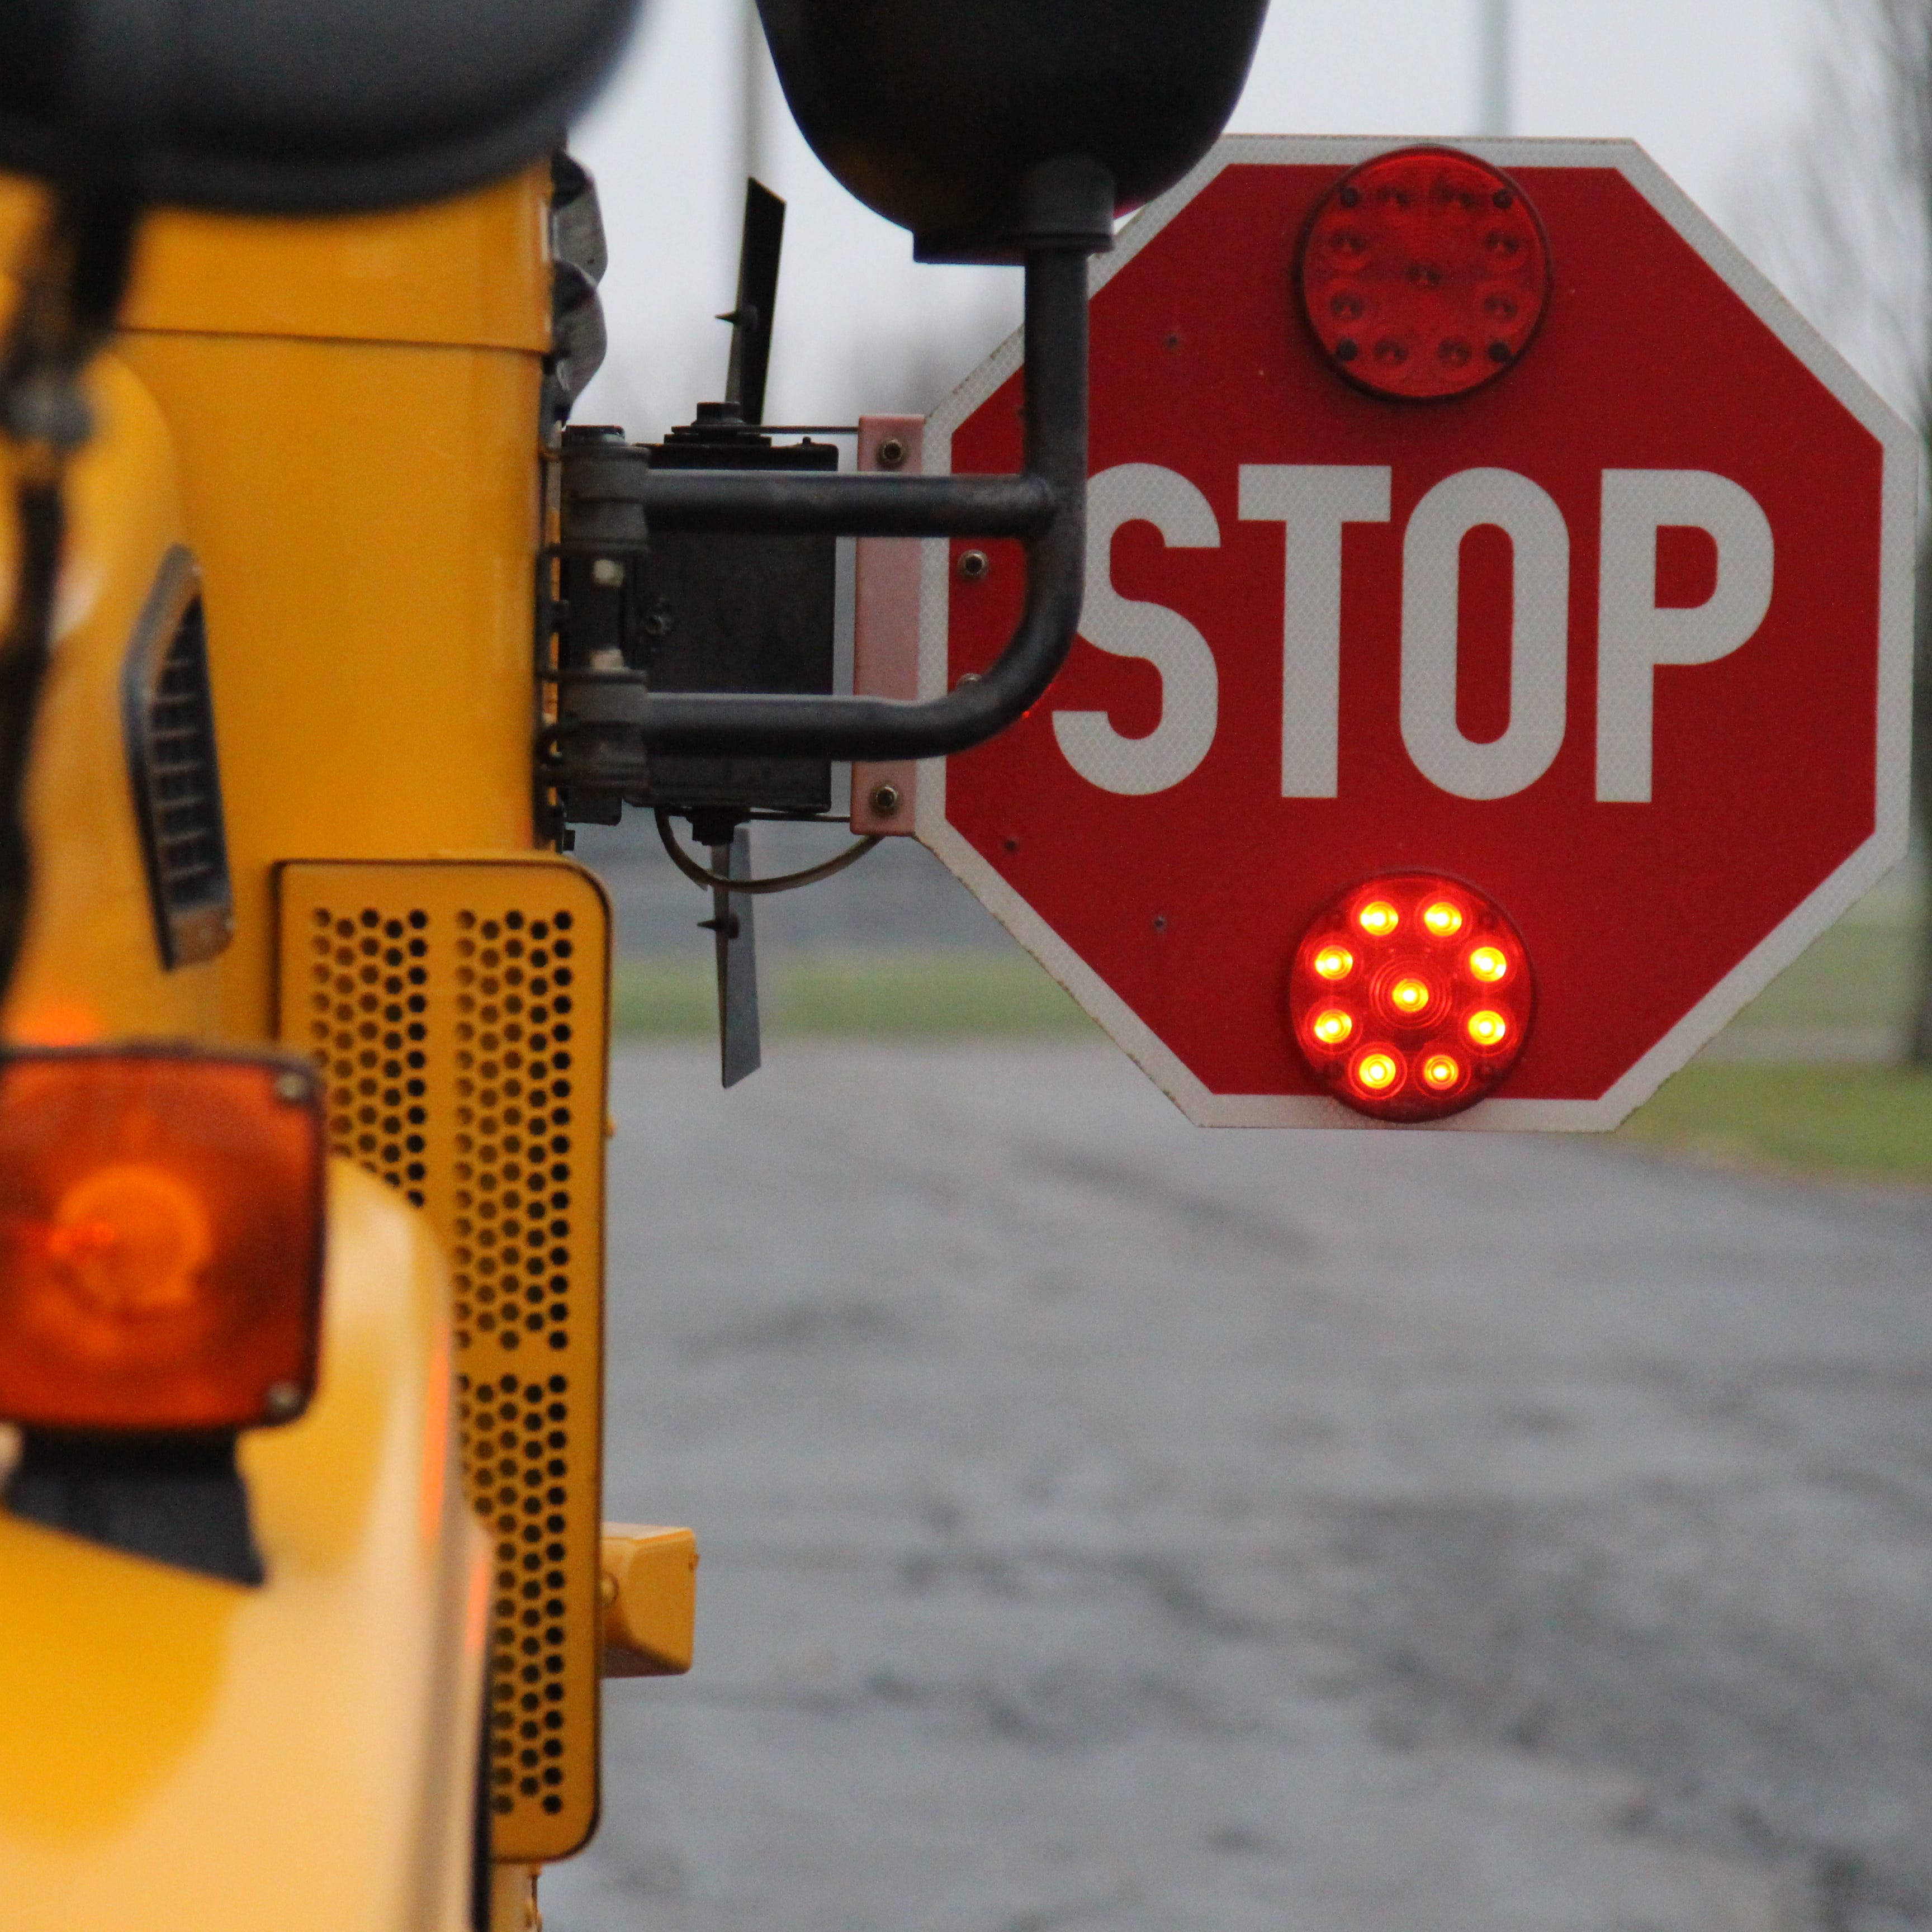 Bus cameras a 'no-brainer' for school districts seeking to catch violators